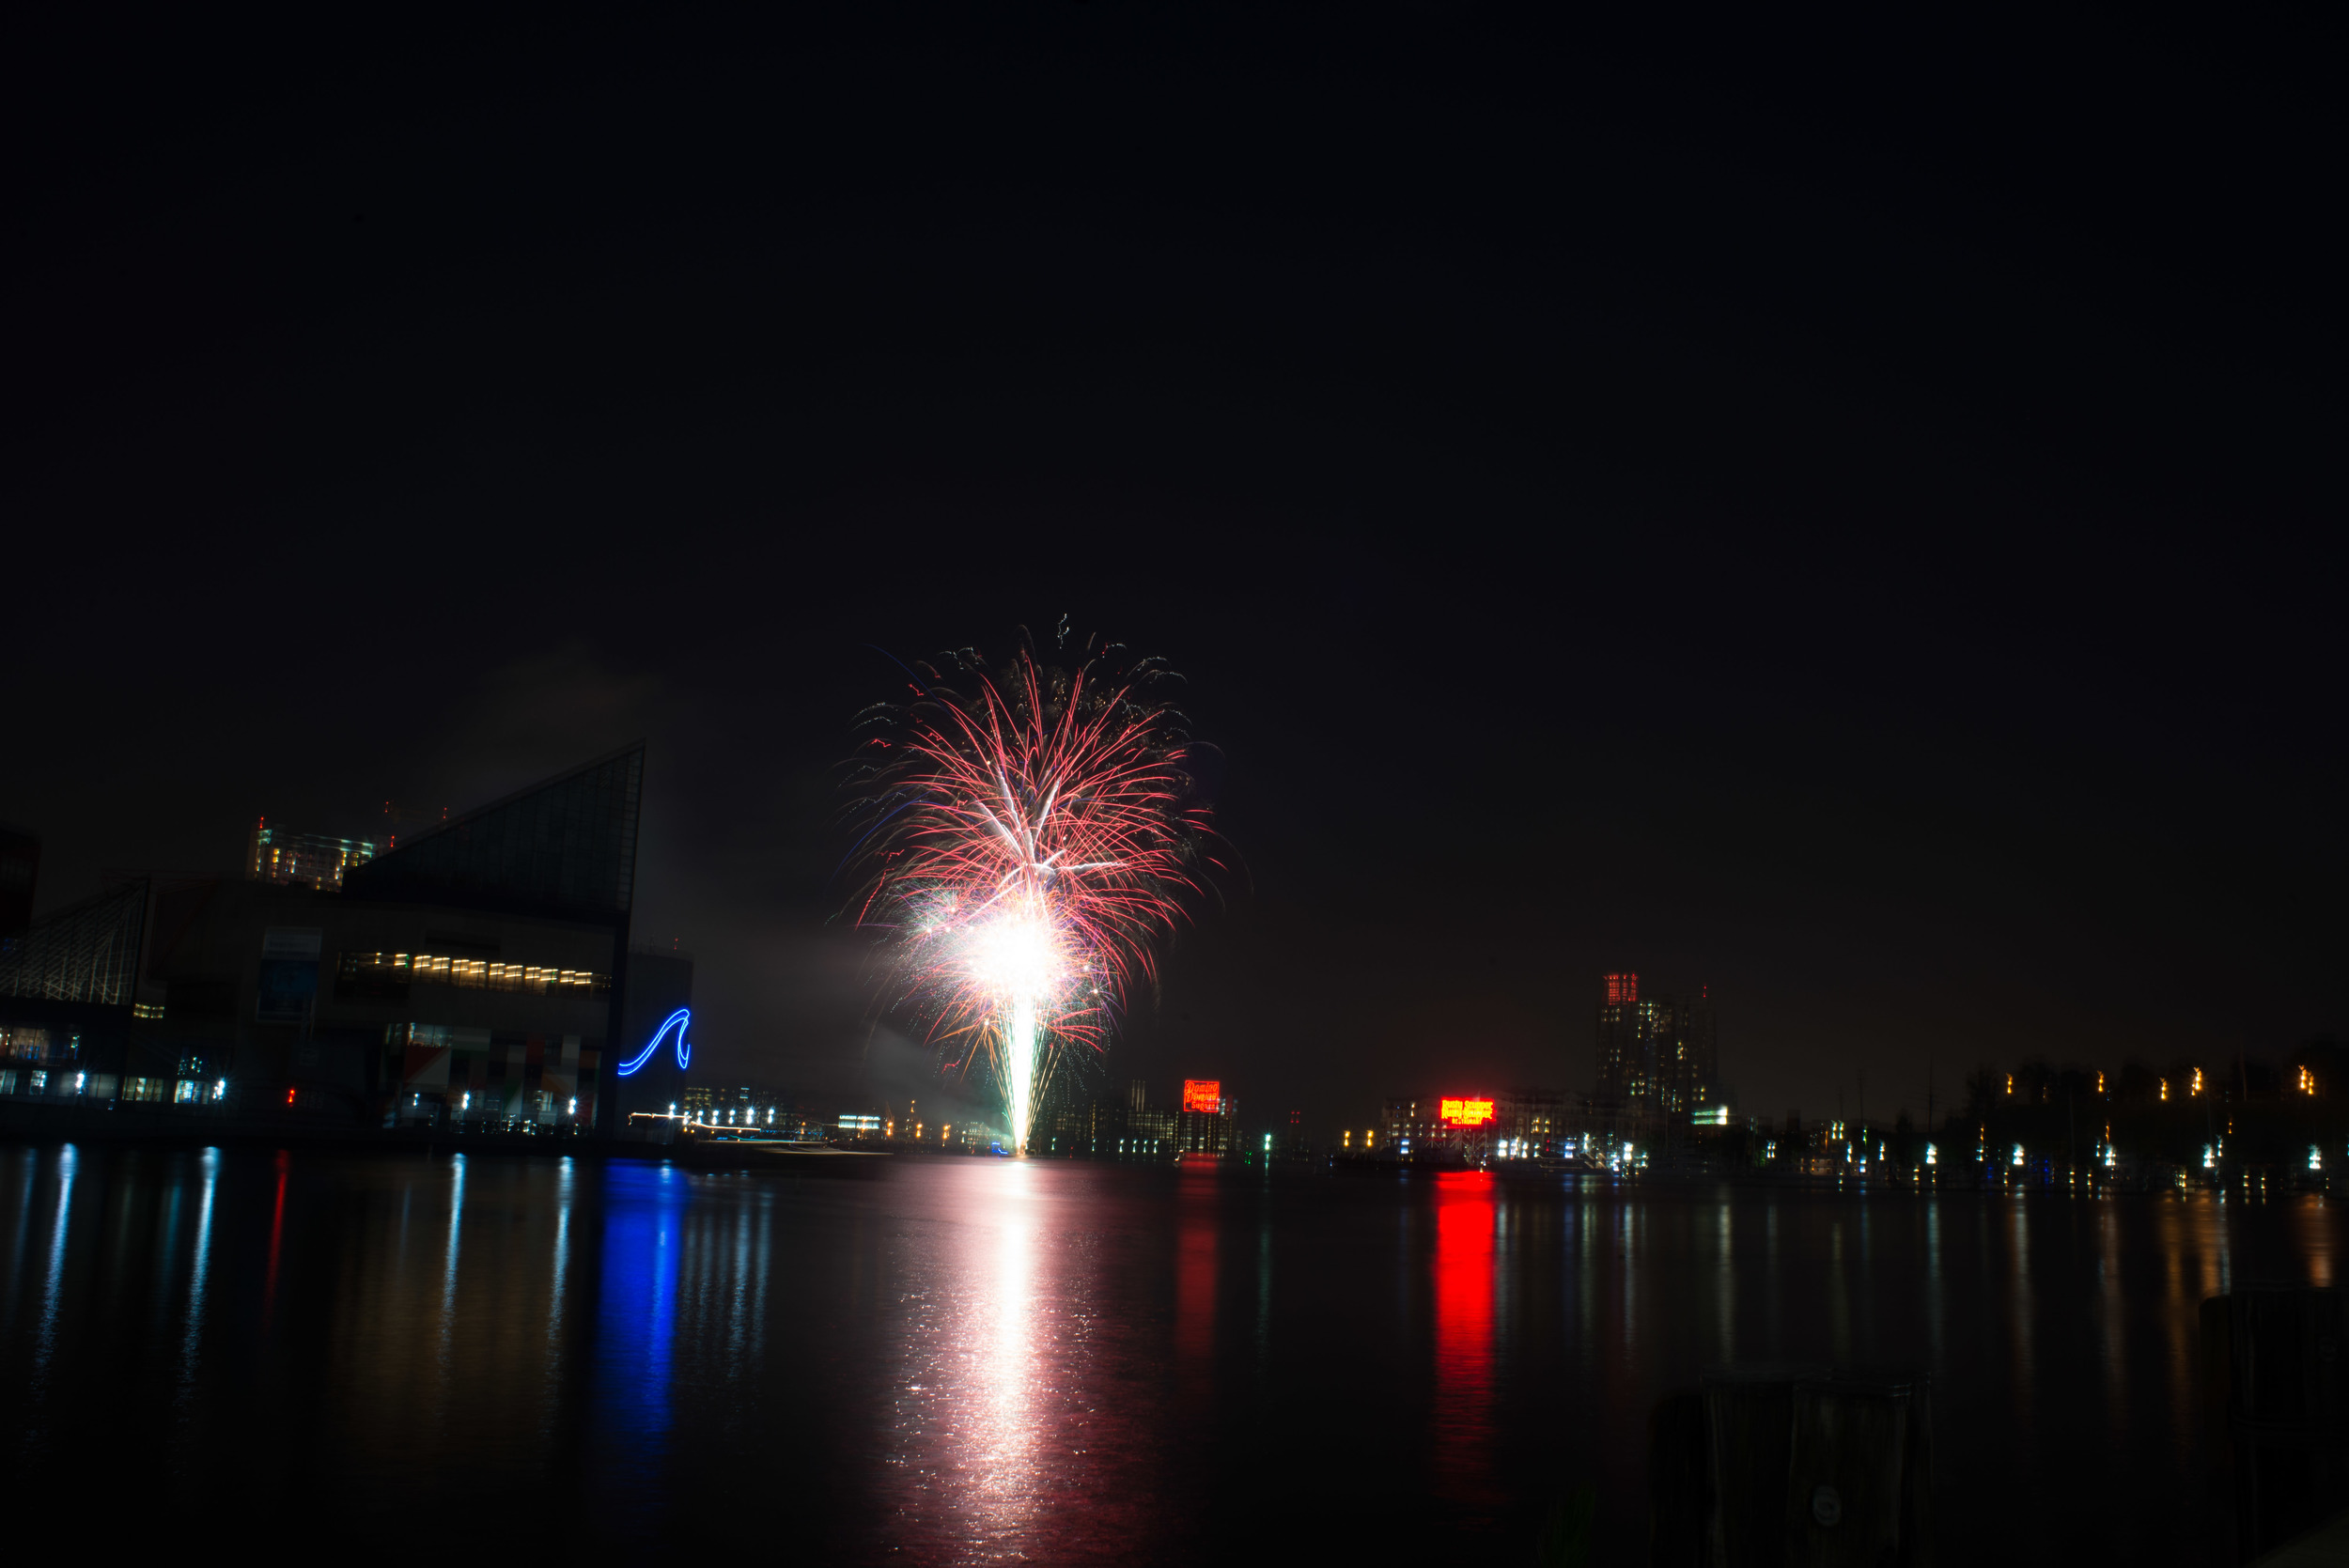 Baltimore City Fireworks Night Photography